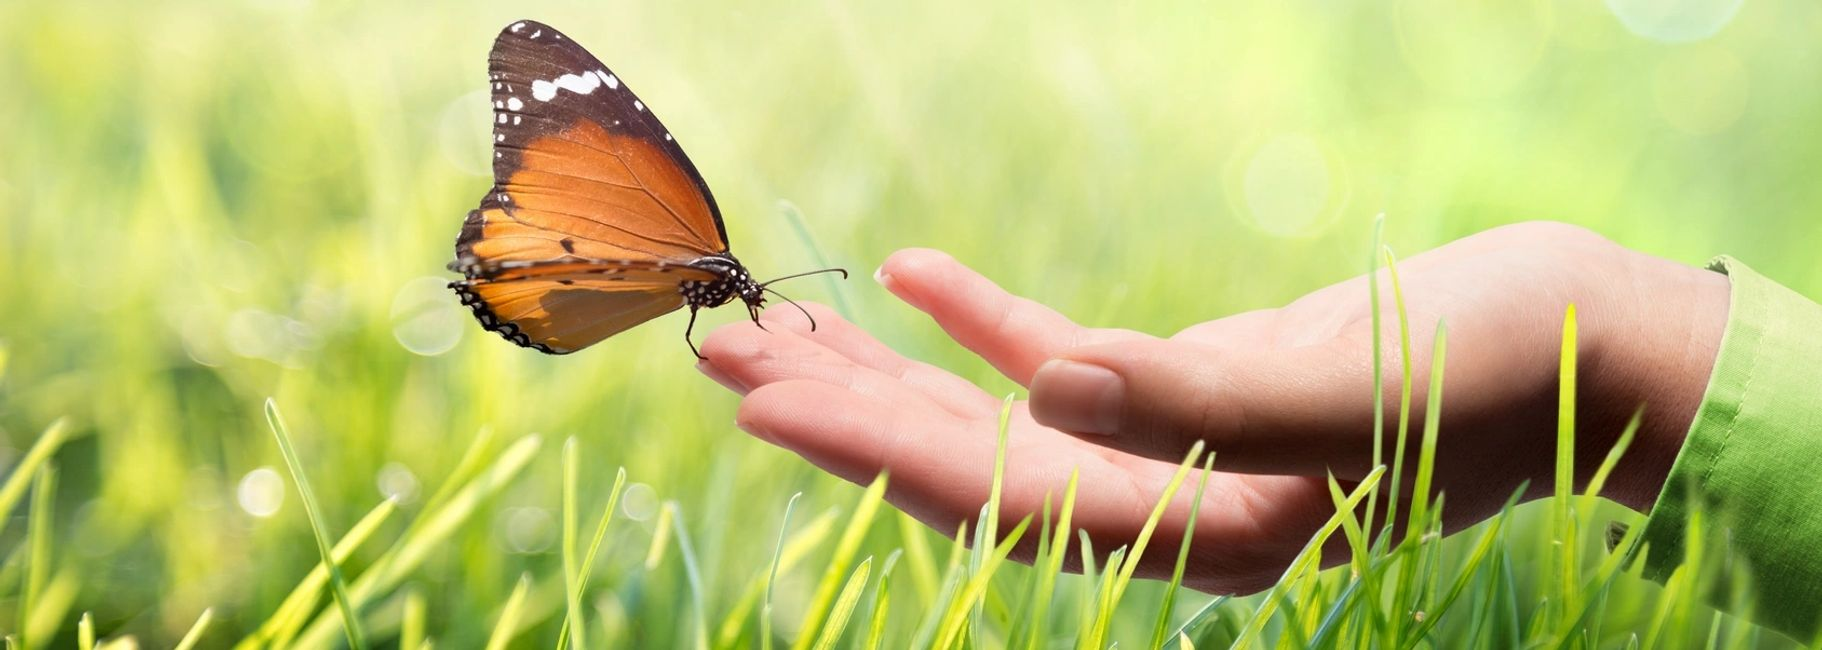 butterfly sitting on an outstretched hand